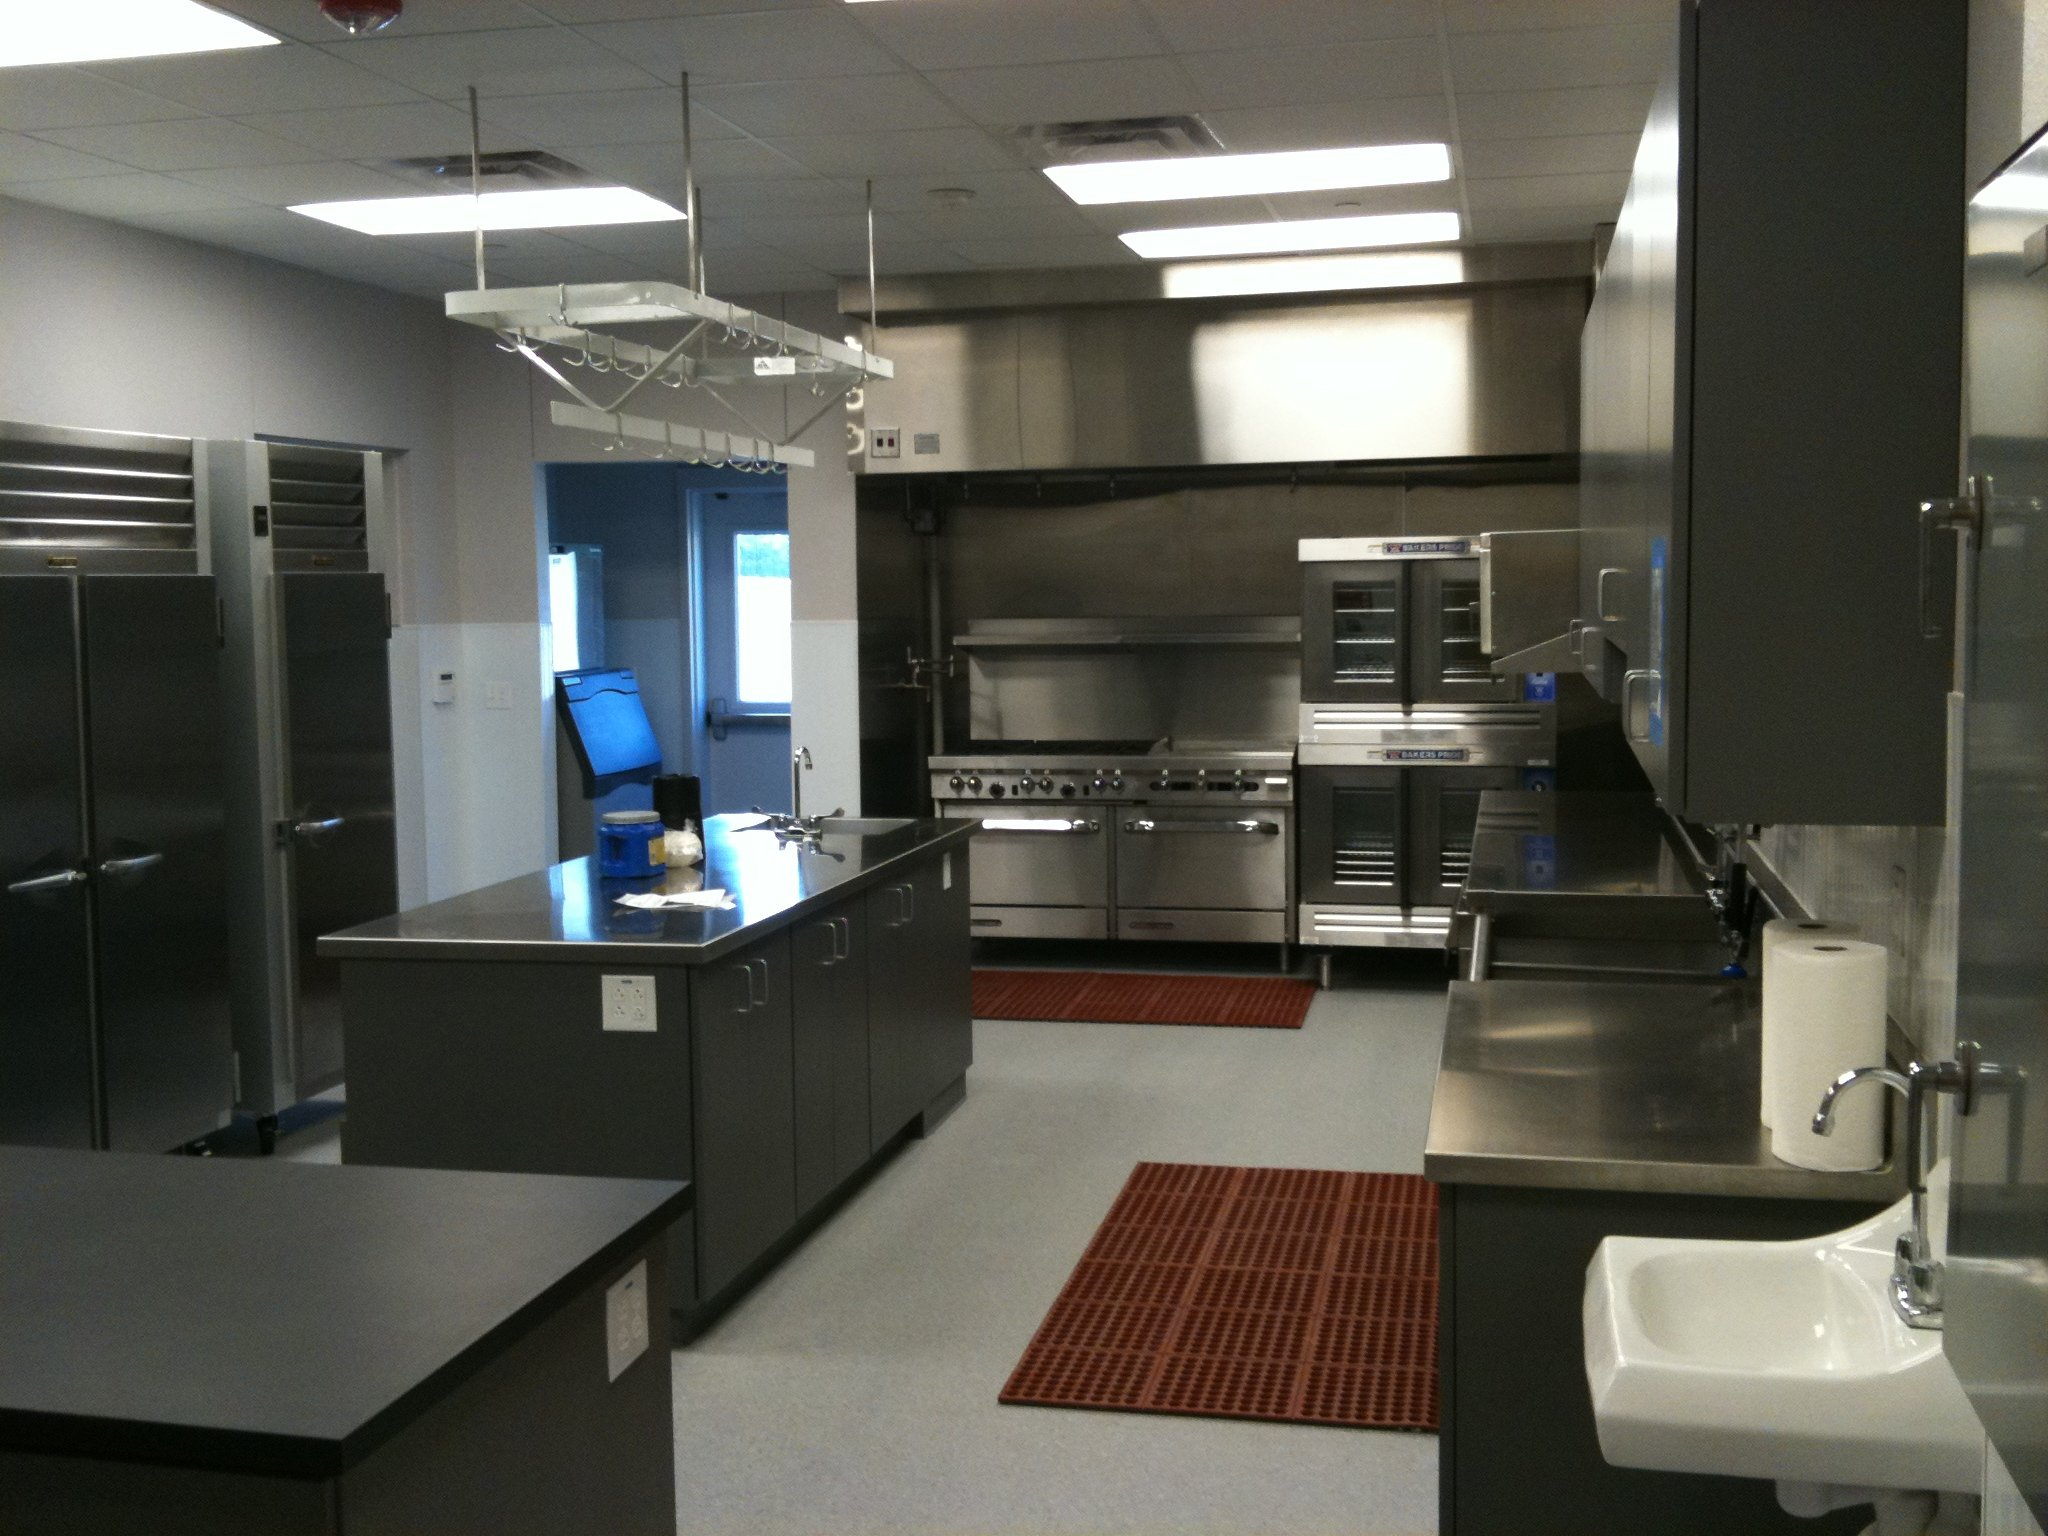 Luxury Commercial Kitchen Code Requirements | KhetKrong